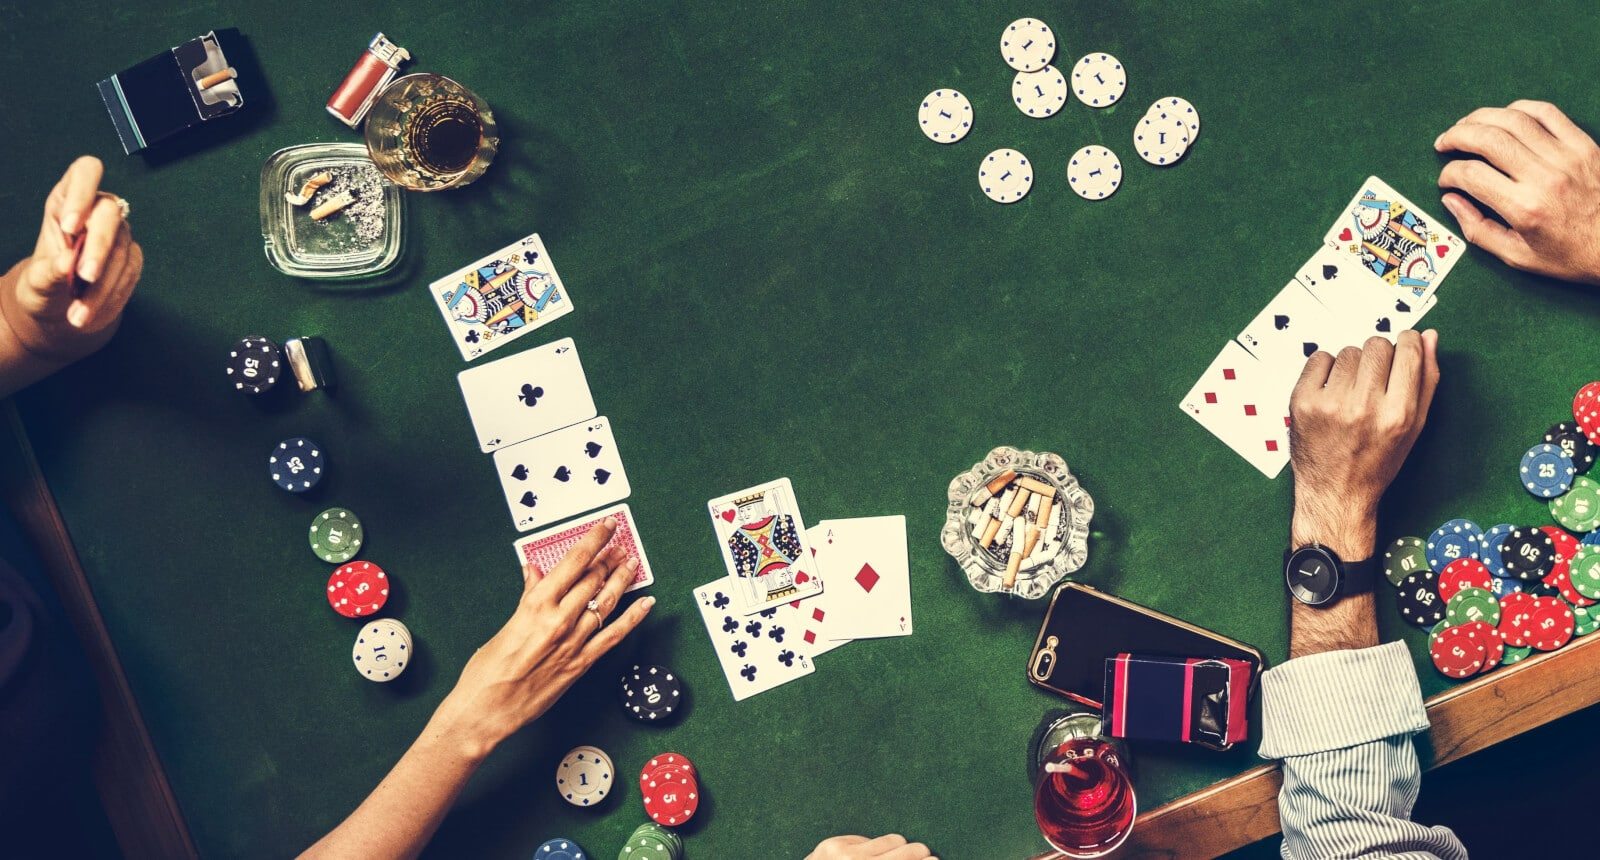 Casino Gambling - Best For New Entrants To Casino Games